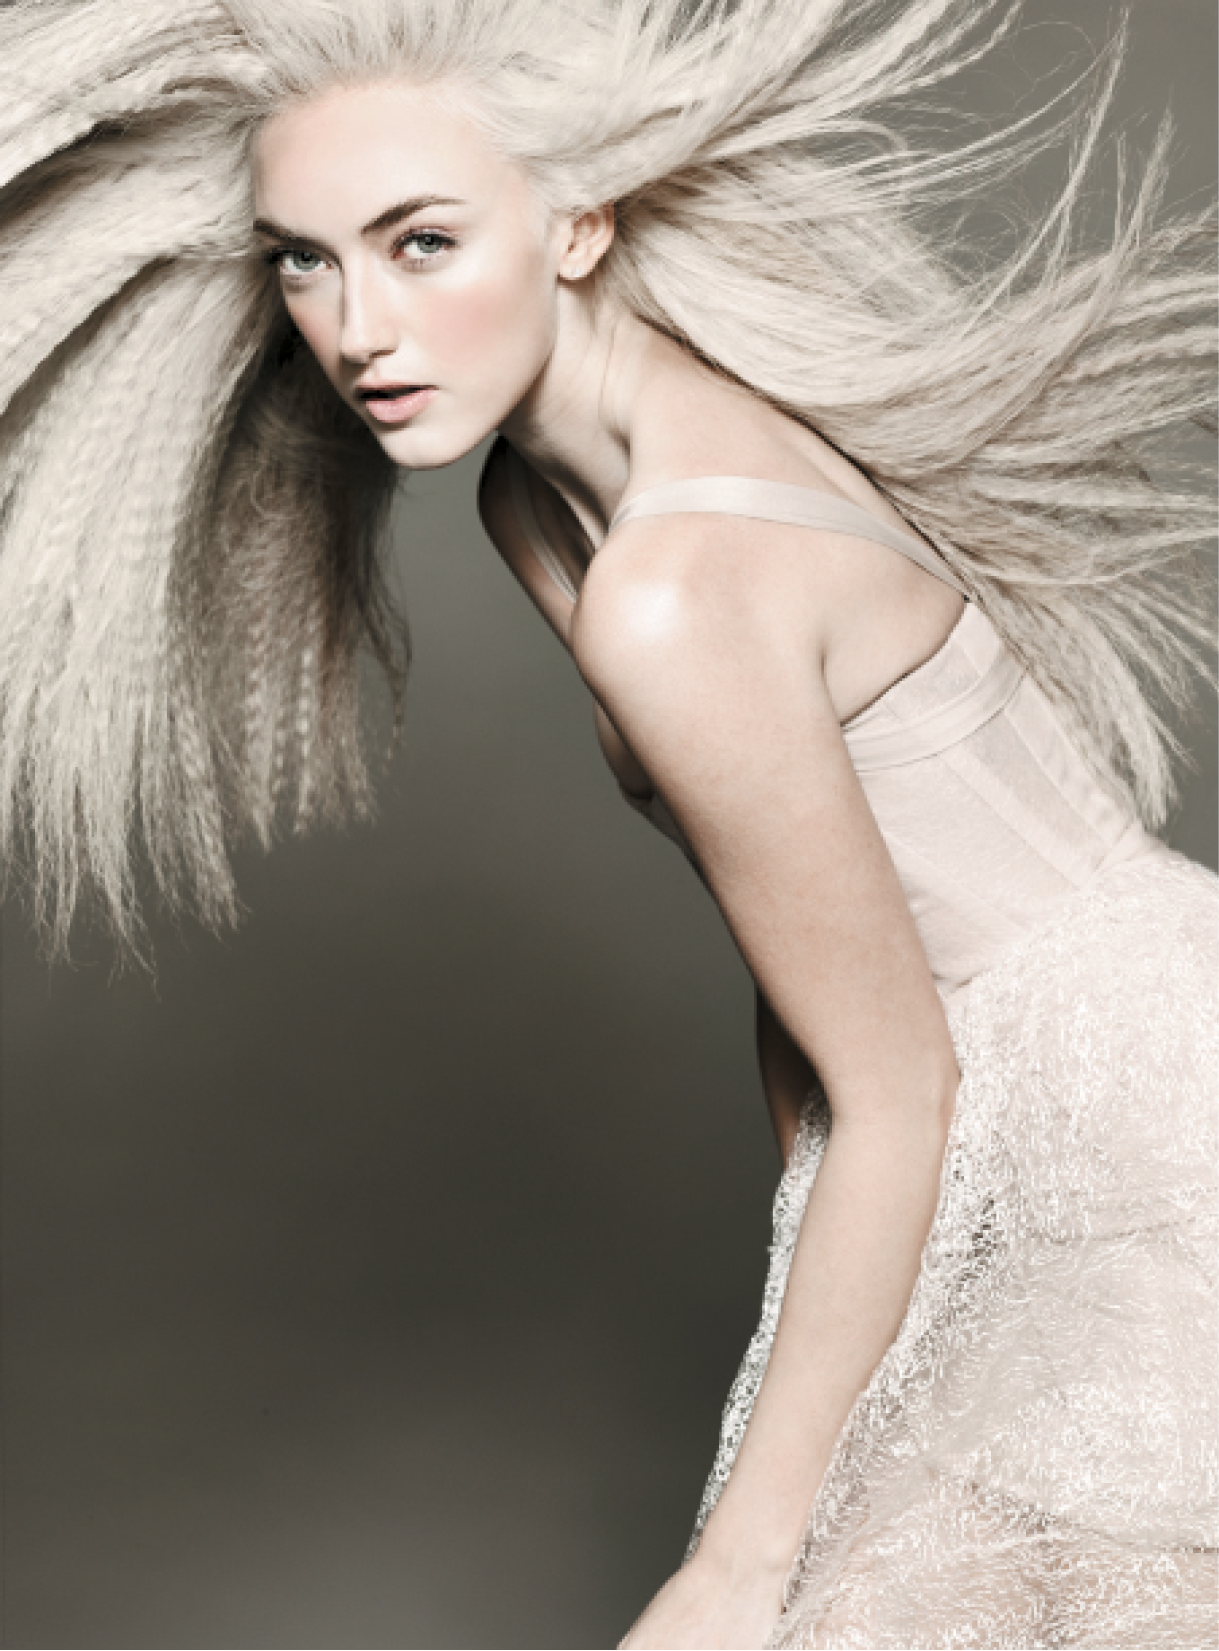 To create this look, Bossendorfer worked a bit of Powder Puff at the roots for volume. Next, she relied on a simple crimping technique from the base to the ends before applying Fresh Hair throughout strands for volume and fullness. Dress: Jad Ghandour